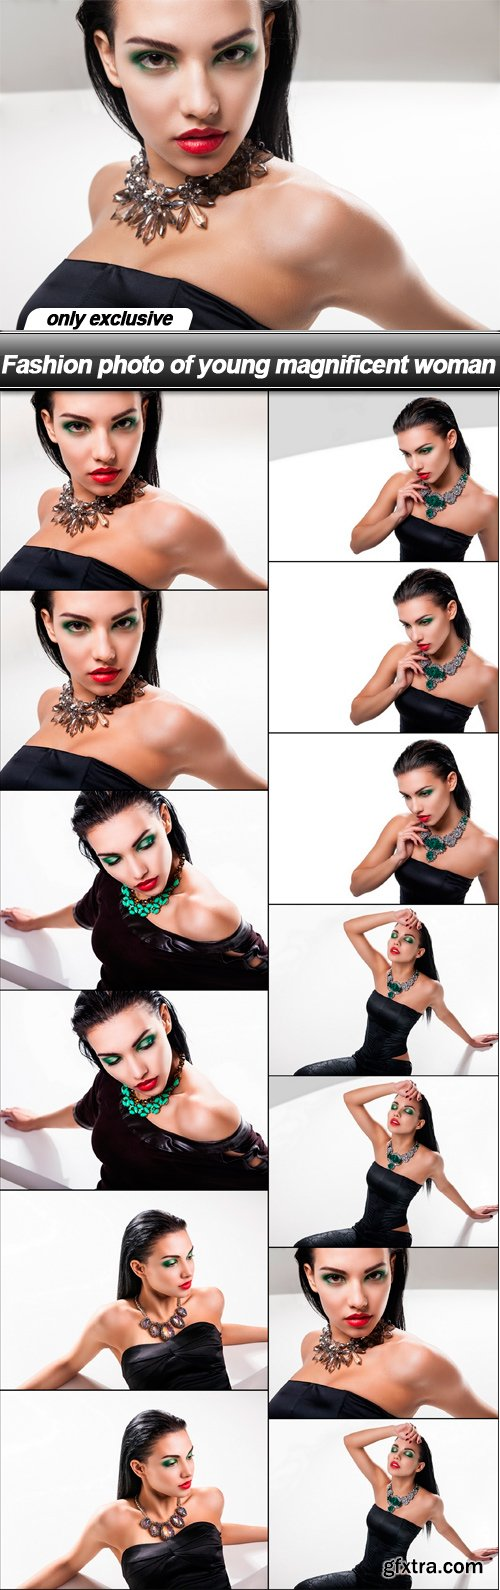 Fashion photo of young magnificent woman - 13 UHQ JPEG